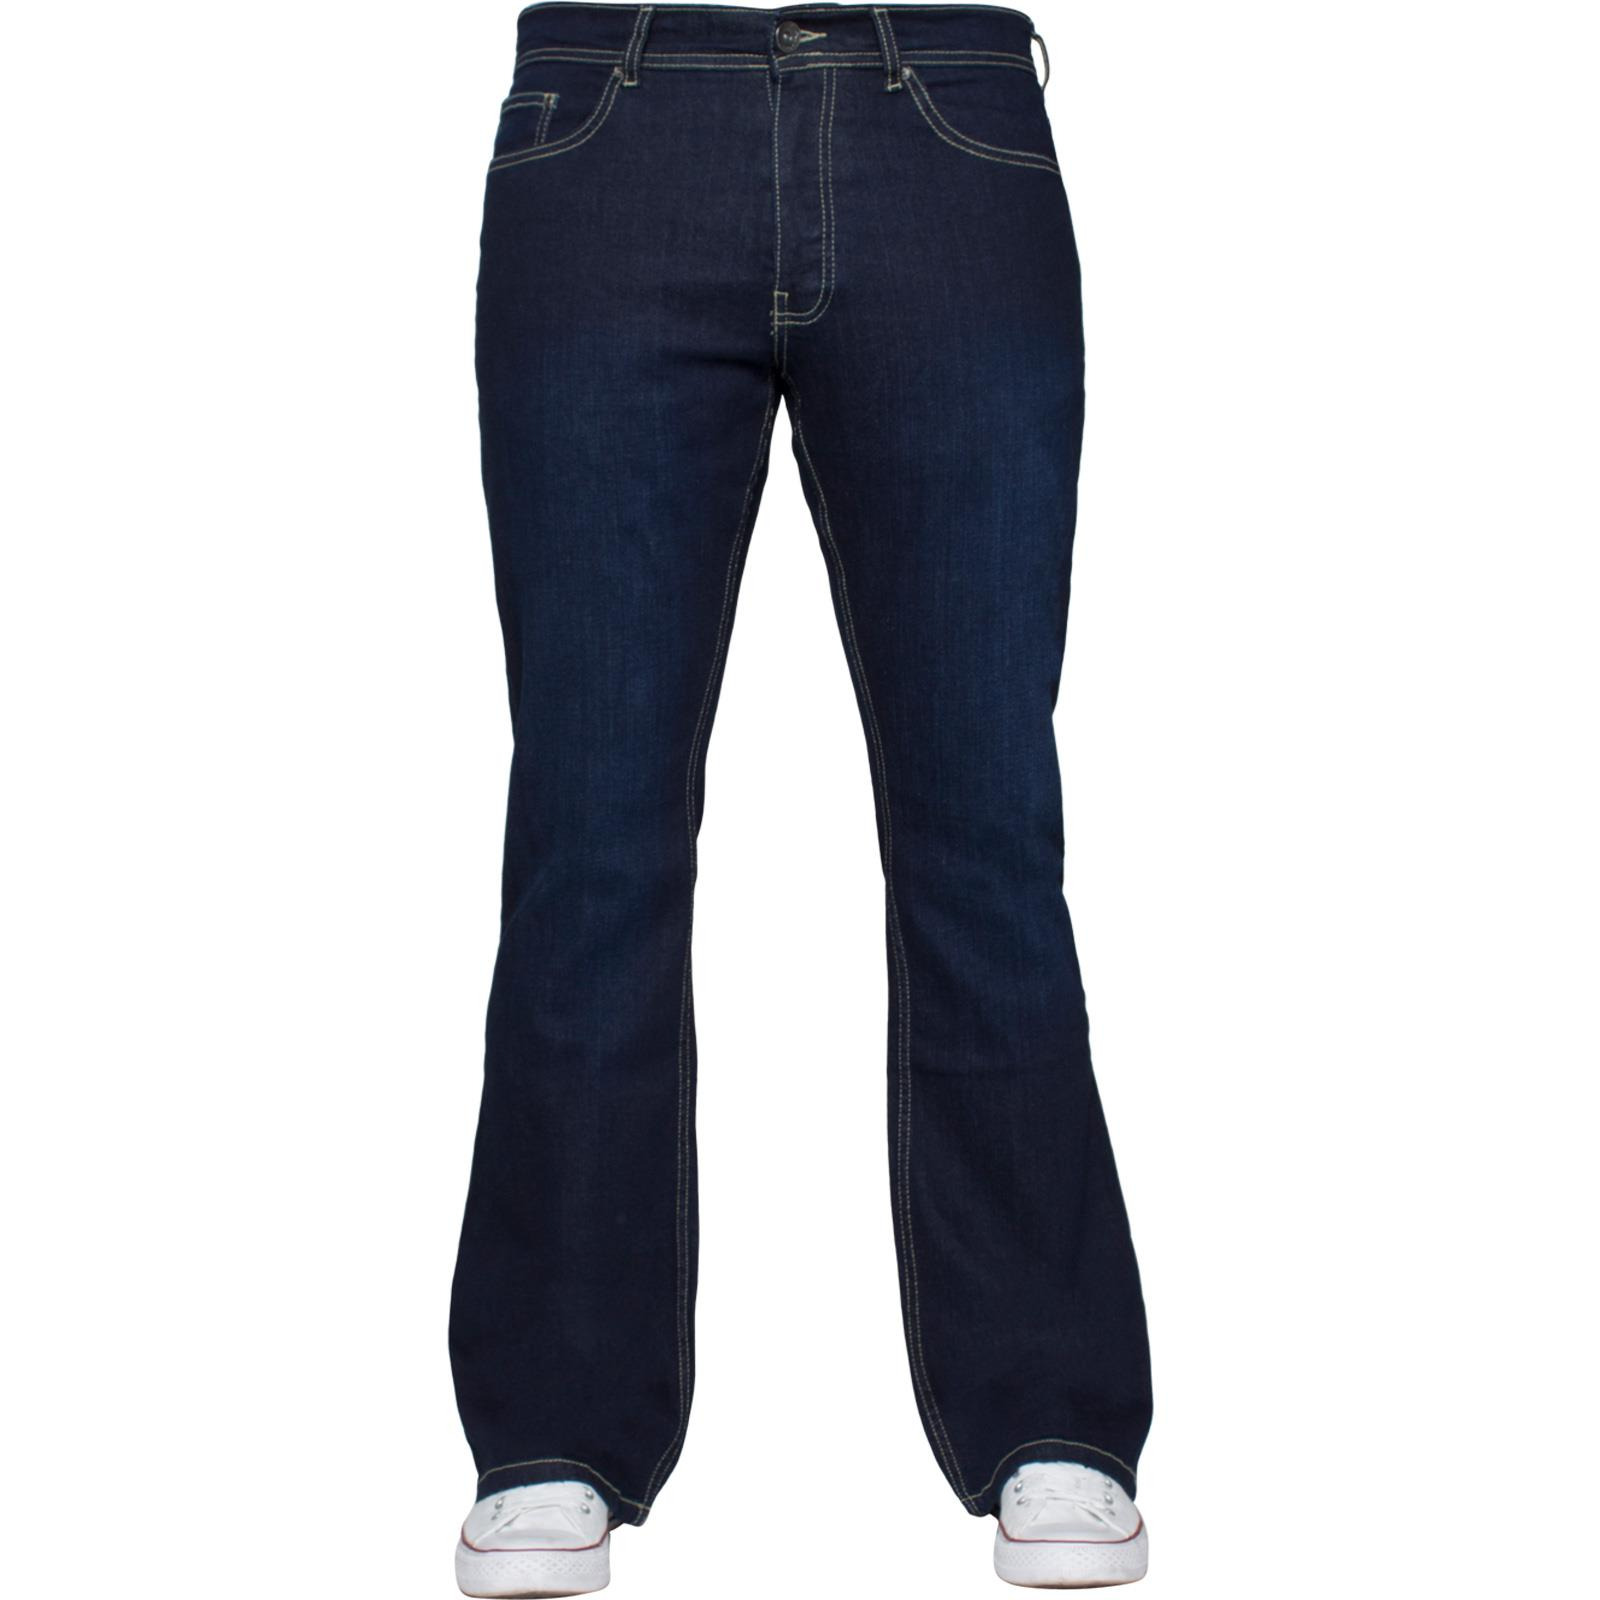 Enzo-Mens-Jeans-Big-Tall-Leg-King-Size-Denim-Pants-Chino-Trousers-Waist-44-034-60-034 miniature 95